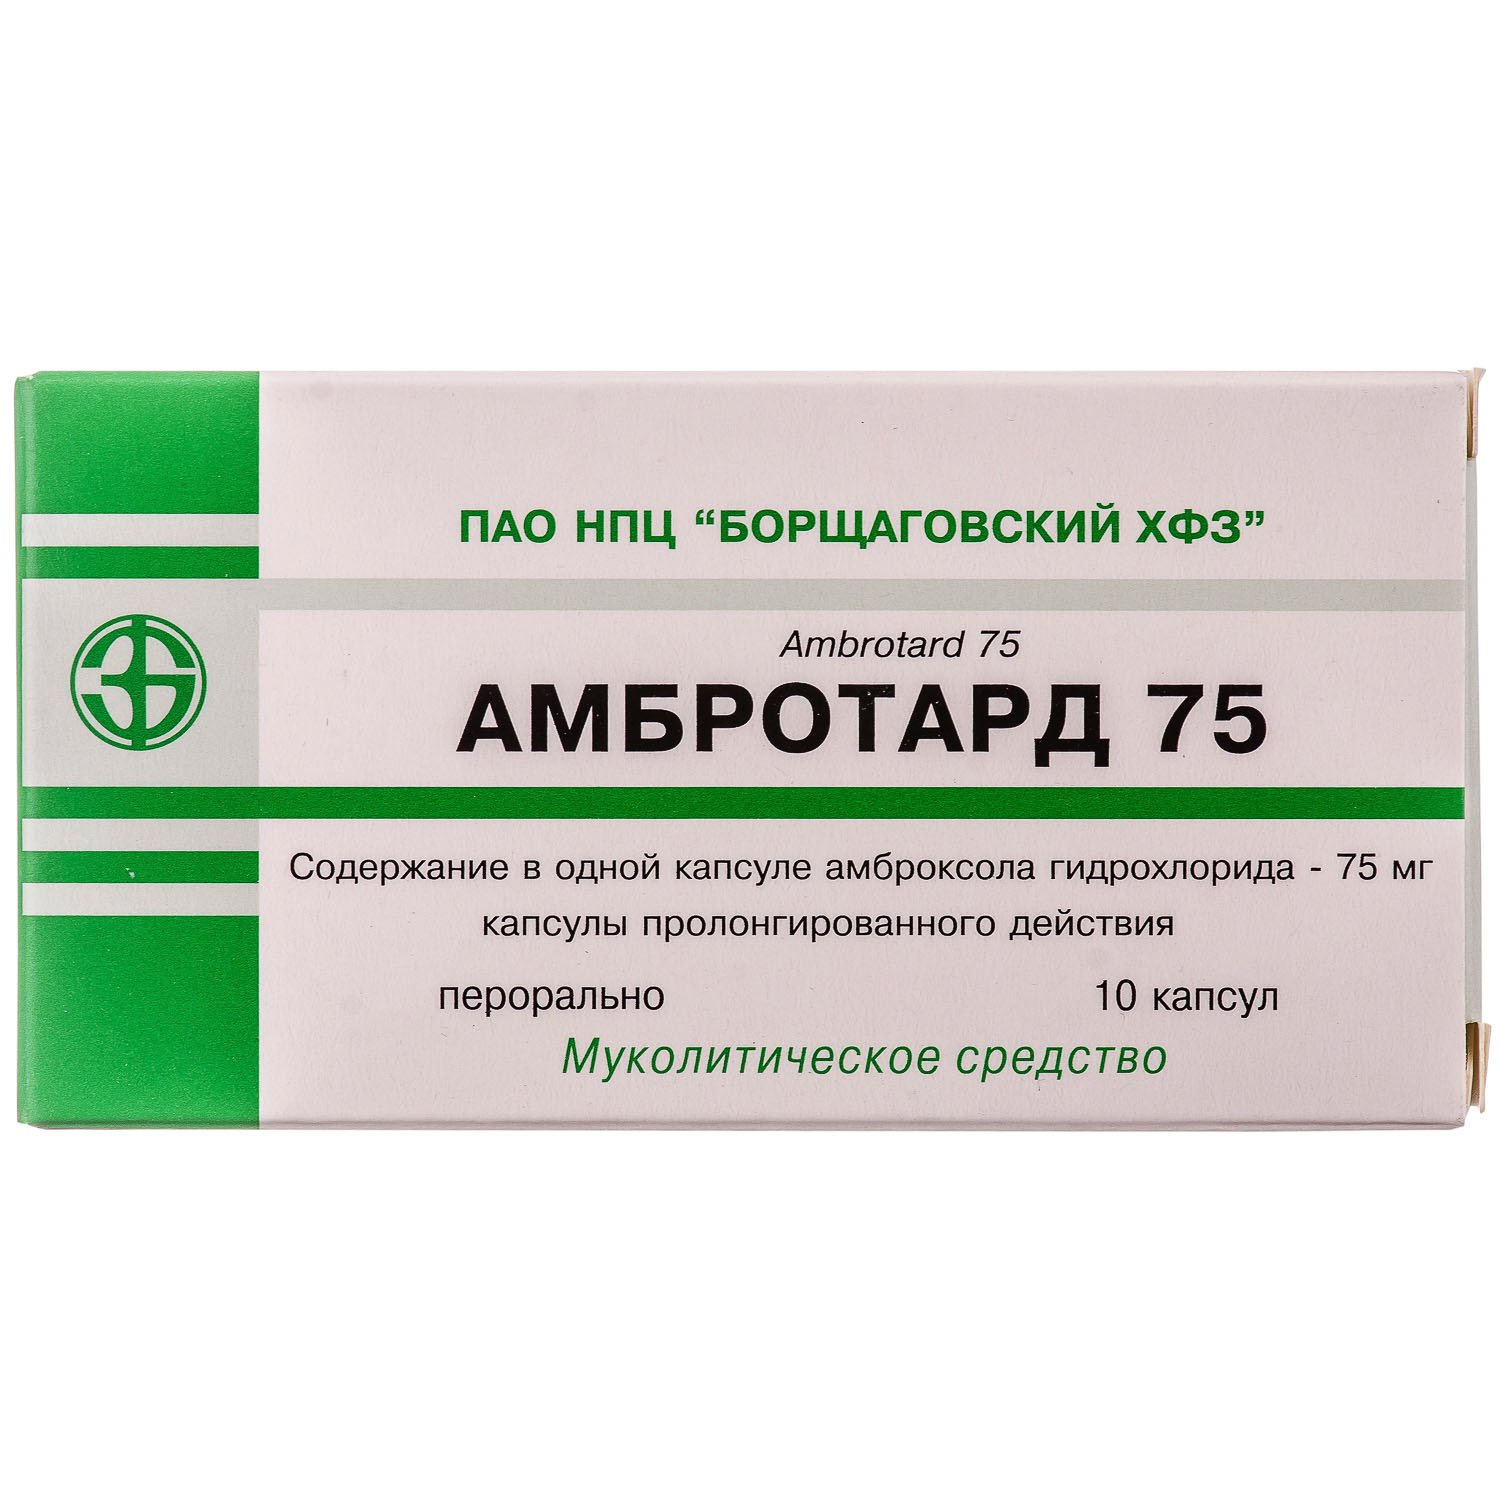 Ambrotard (ambroxol) capsules with prolonged release 75 mg. №10